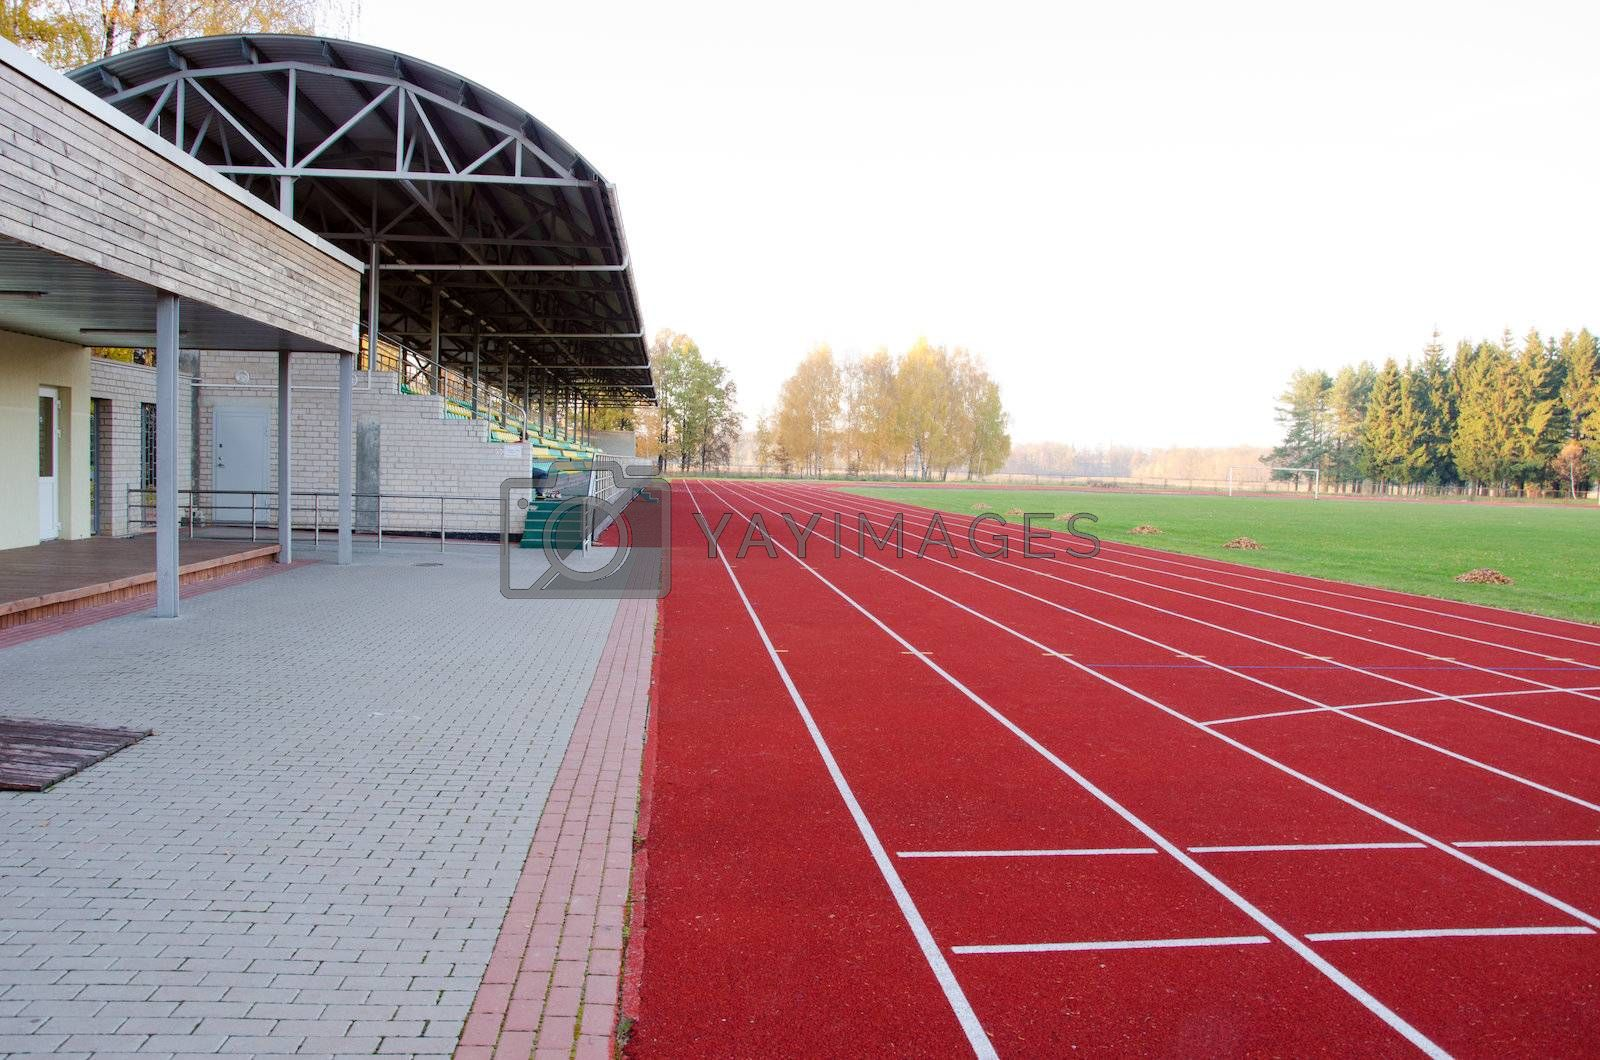 Athletics stadium with running tracks and stands and football pitch in middle